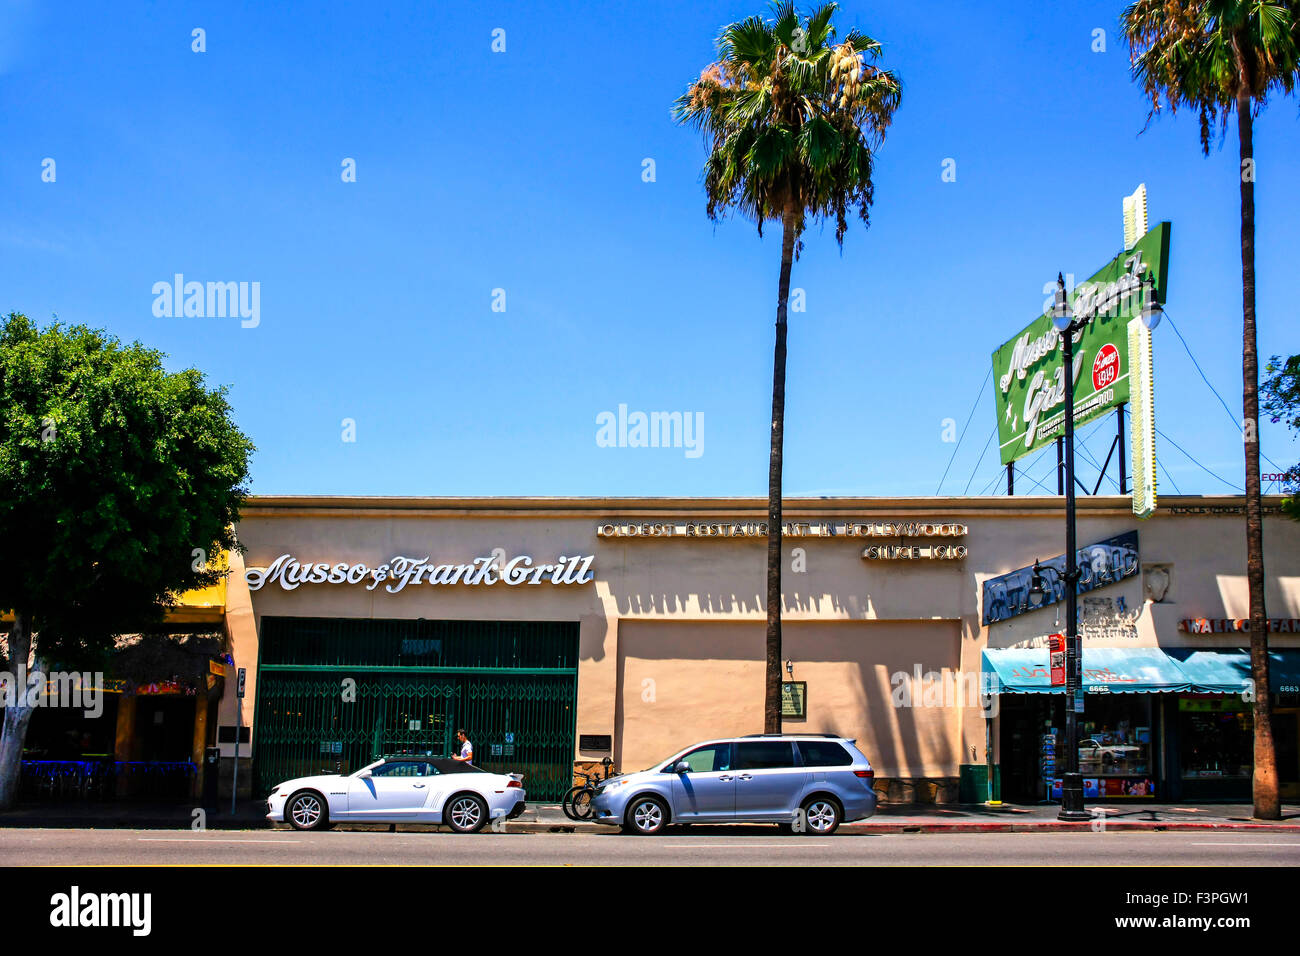 Musso and frank grill on hollywood blvd in los angeles ca stock photo 88391997 alamy - Musso and frank grill hollywood ...